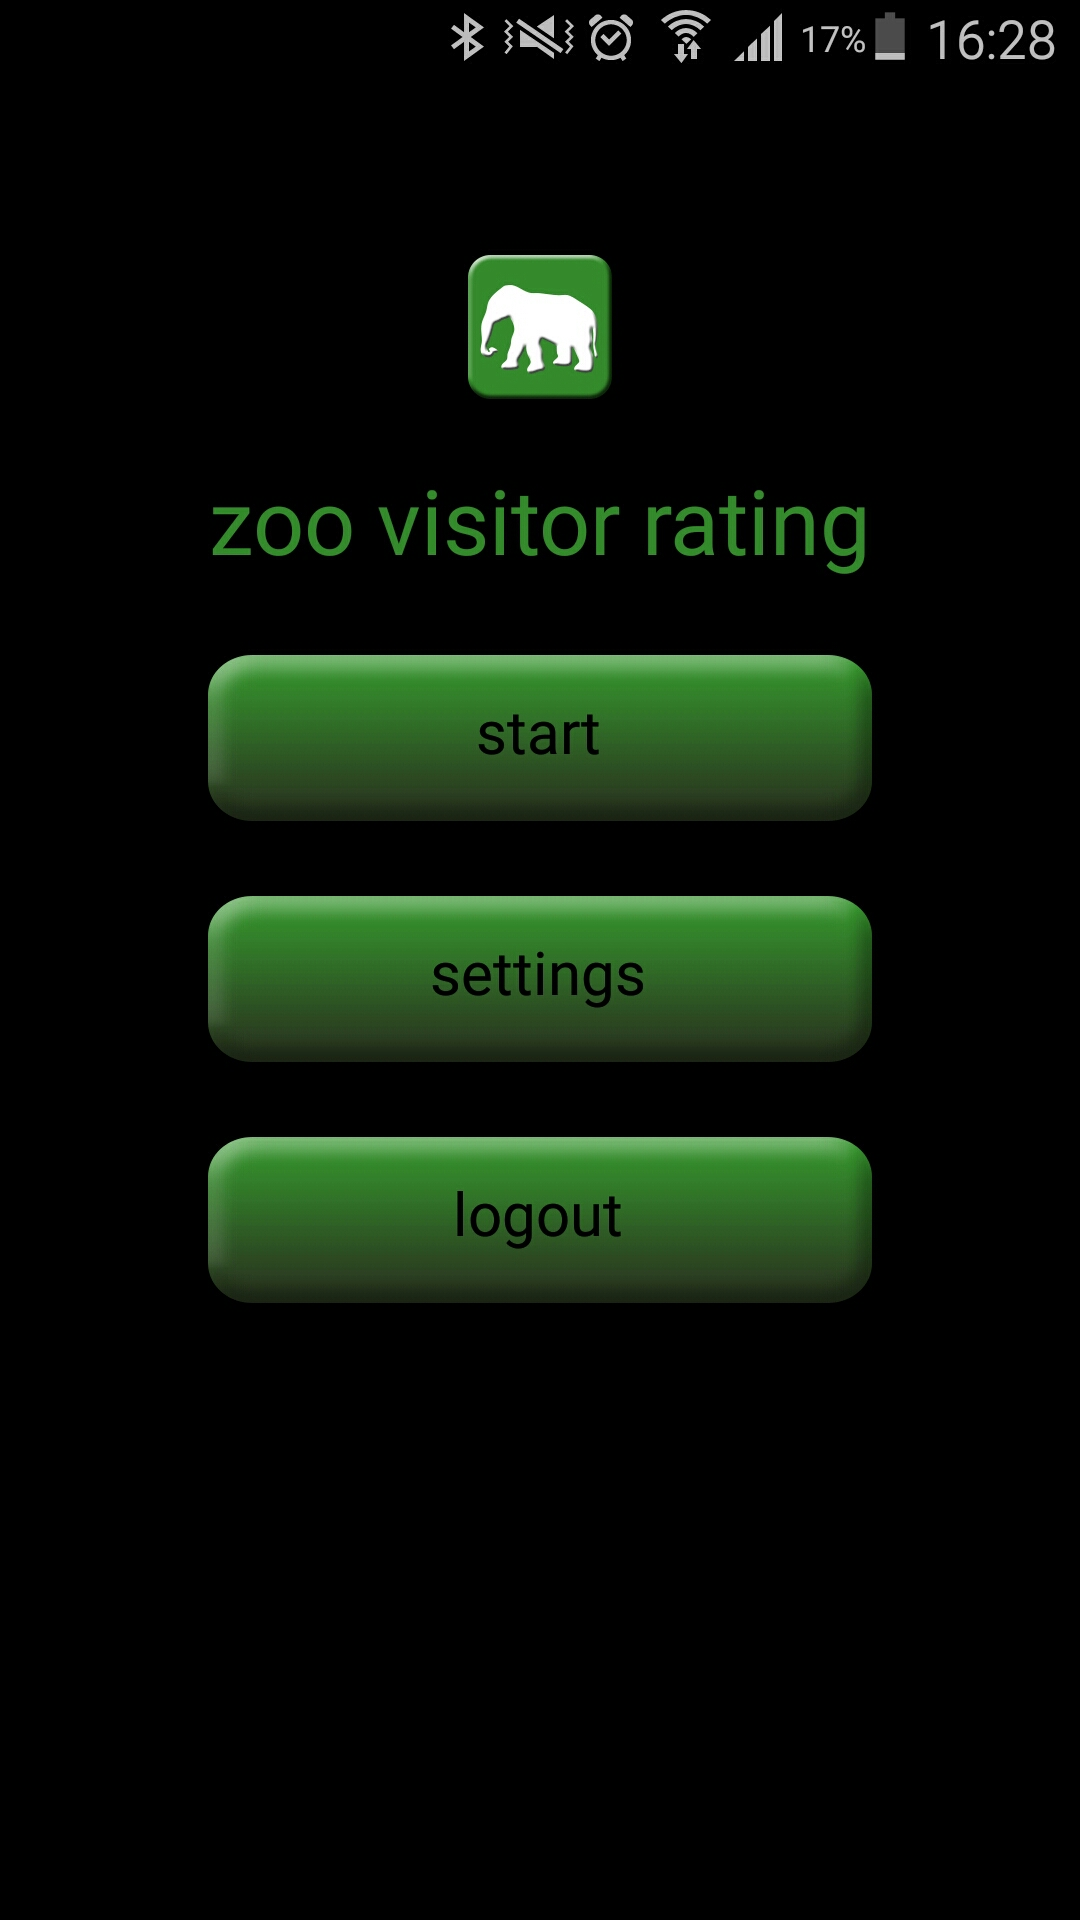 ginstr_app_zooVisitorRating_EN-2